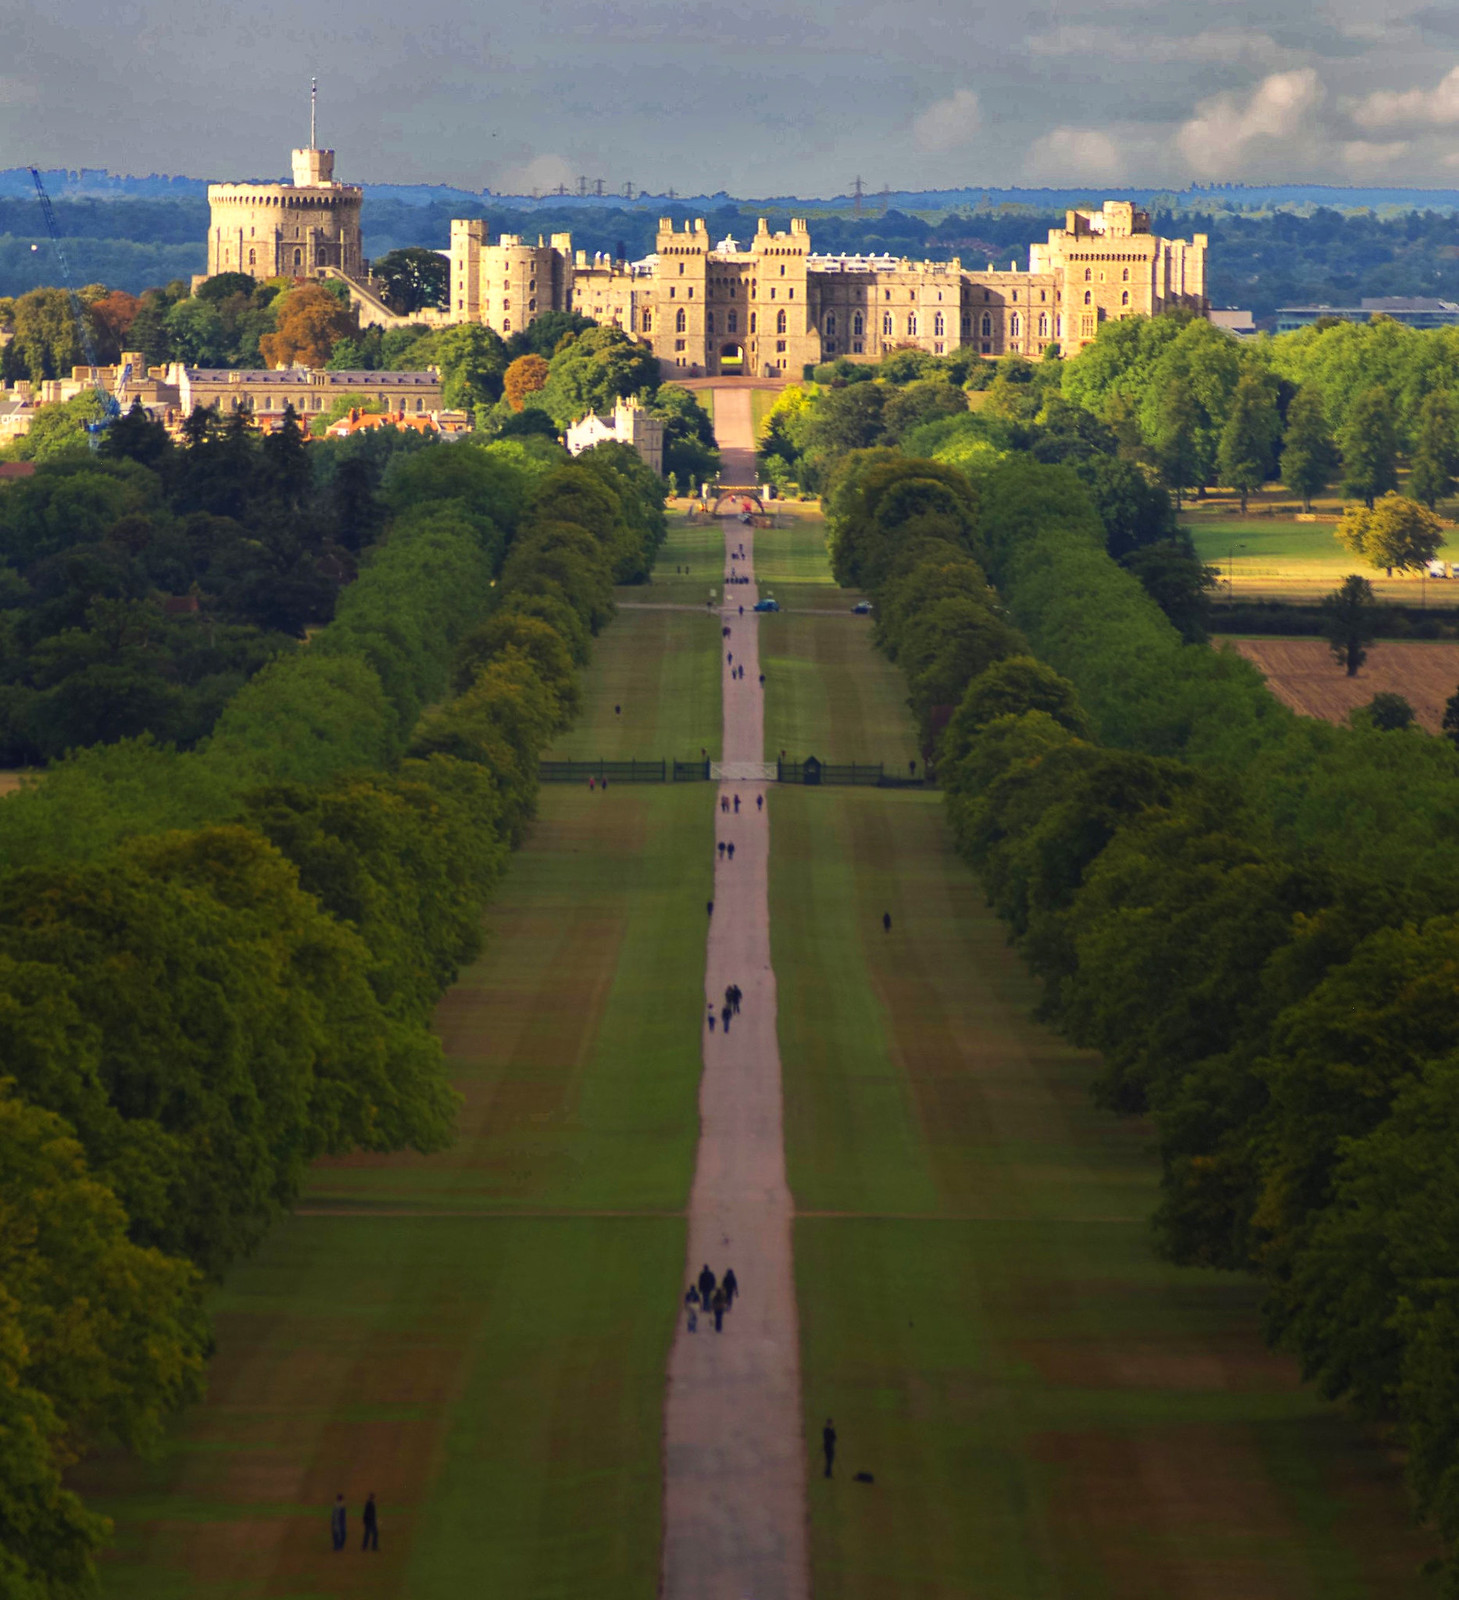 Windsor Castle Long Walk. Credit Graemev2